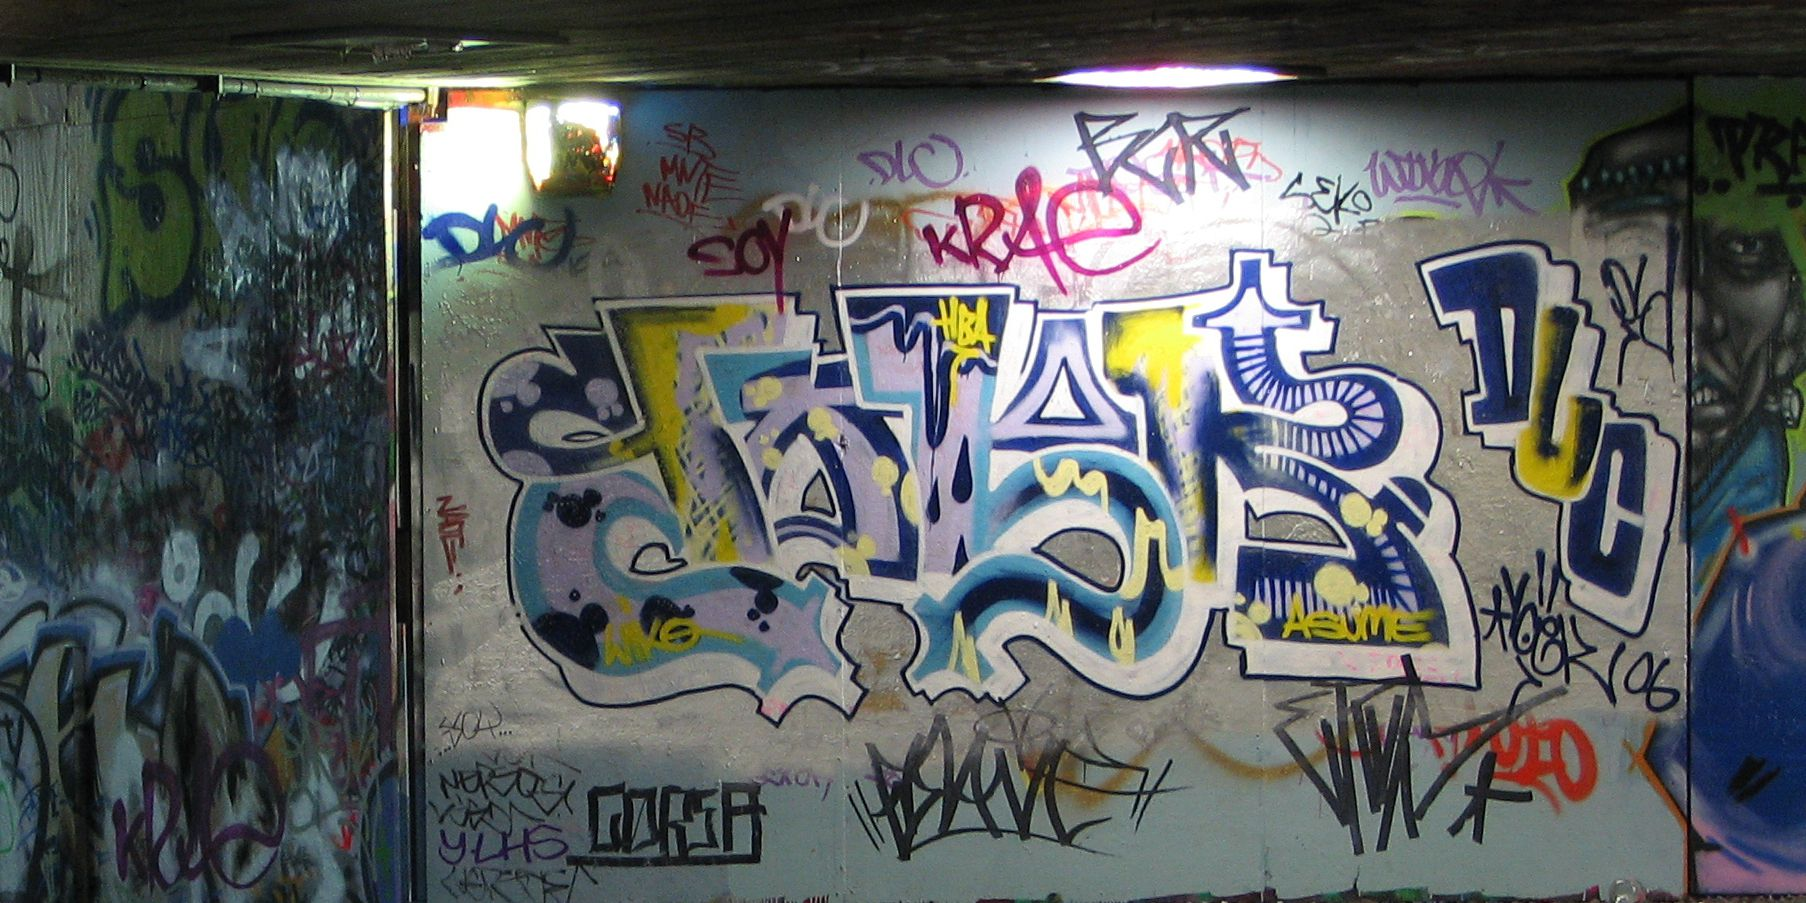 Pima County officials say graffiti is a widespread issue in the area